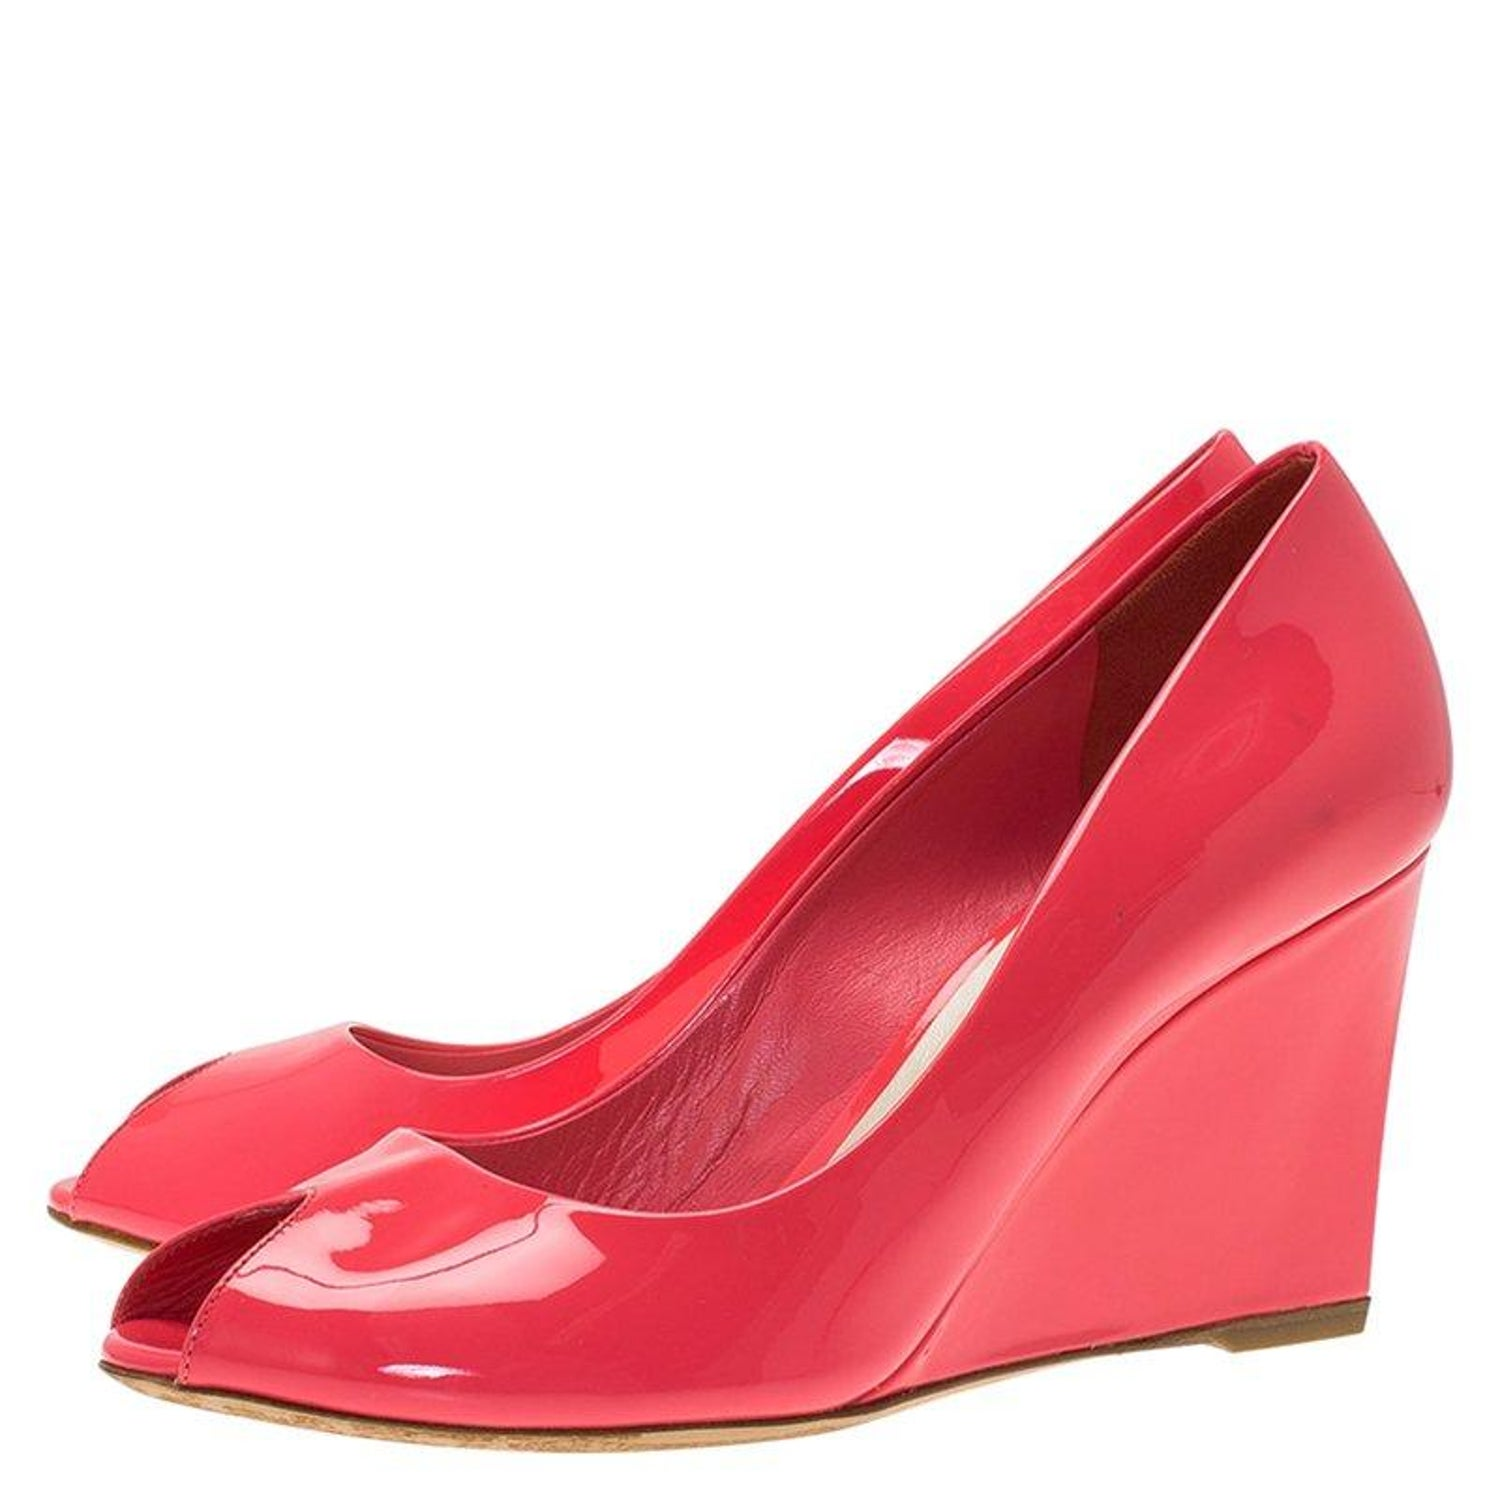 dc9ca4fca0c54 Dior Candy Pink Patent Peep Toe Wedge Pumps Size 38.5